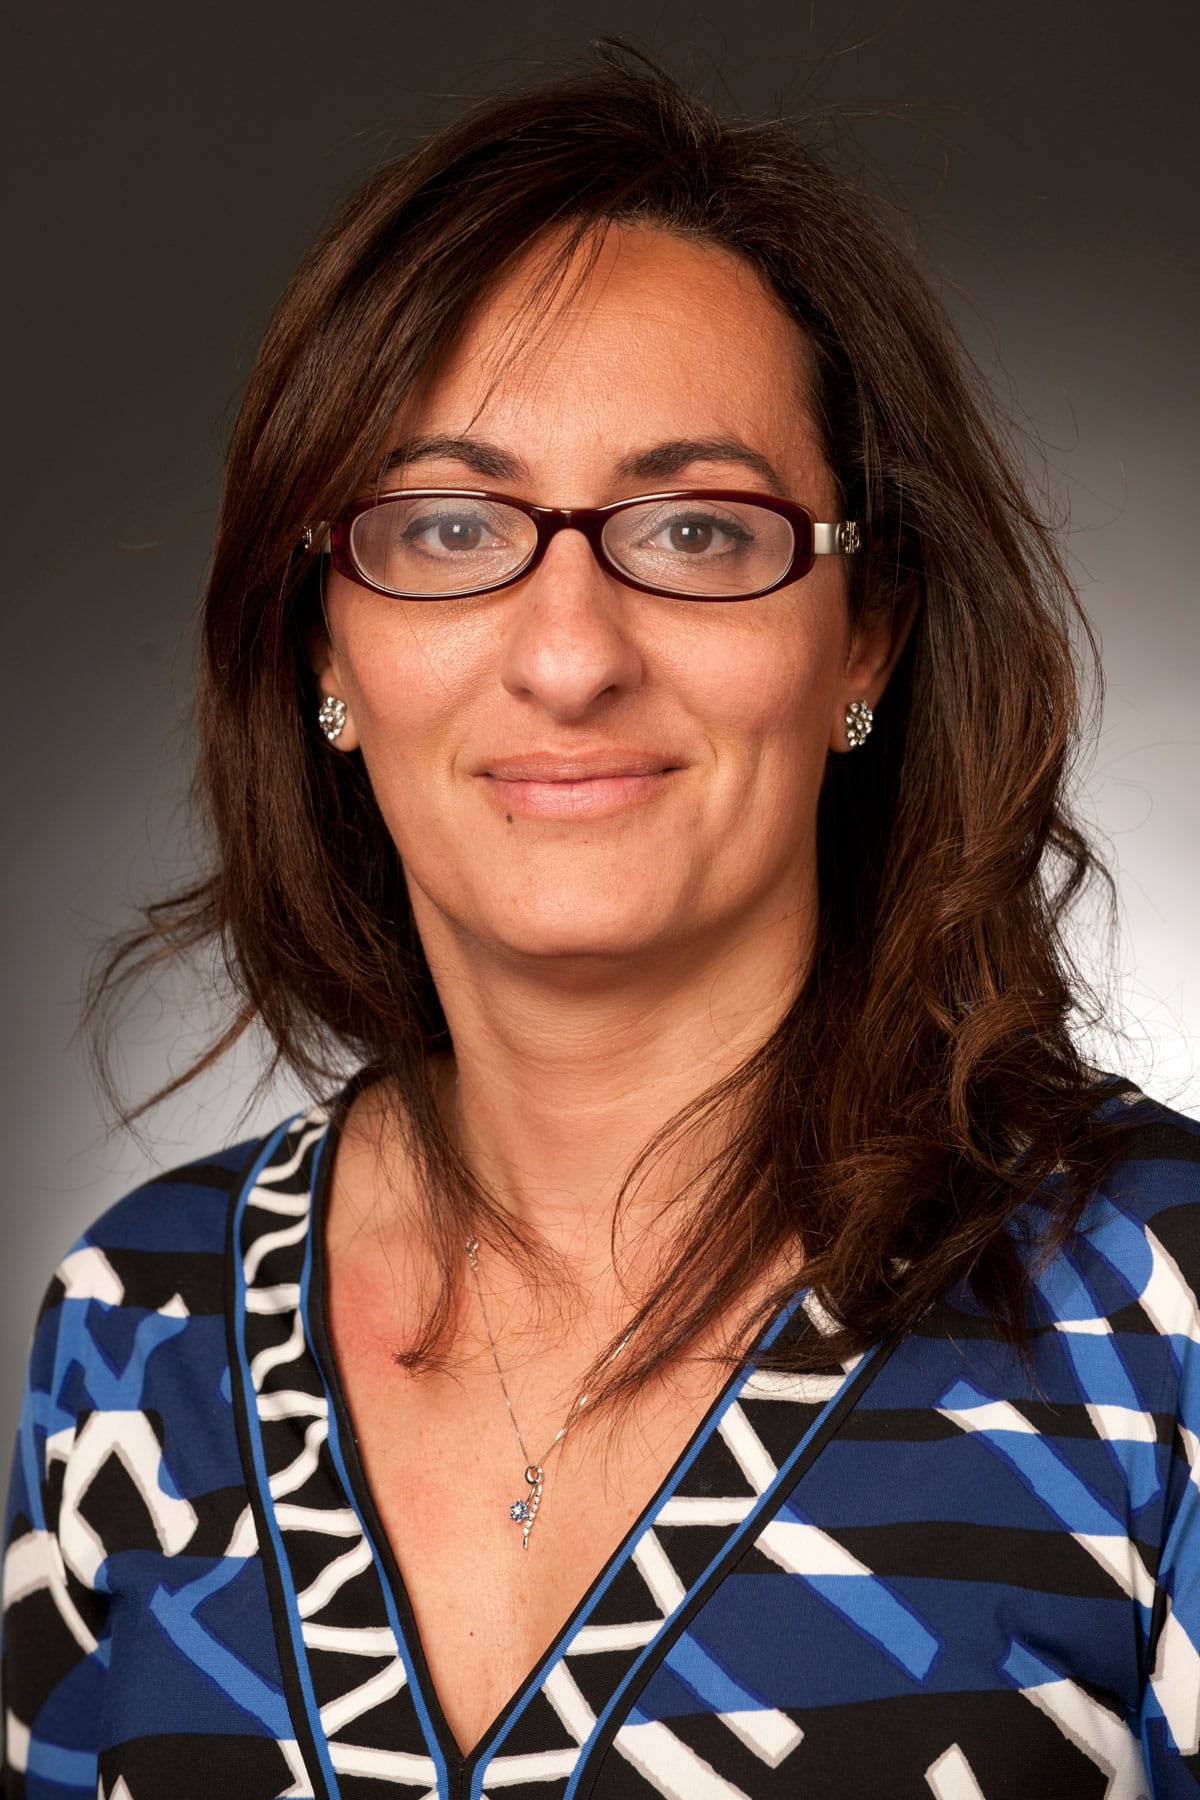 A photo of Marielle Kabbouche.